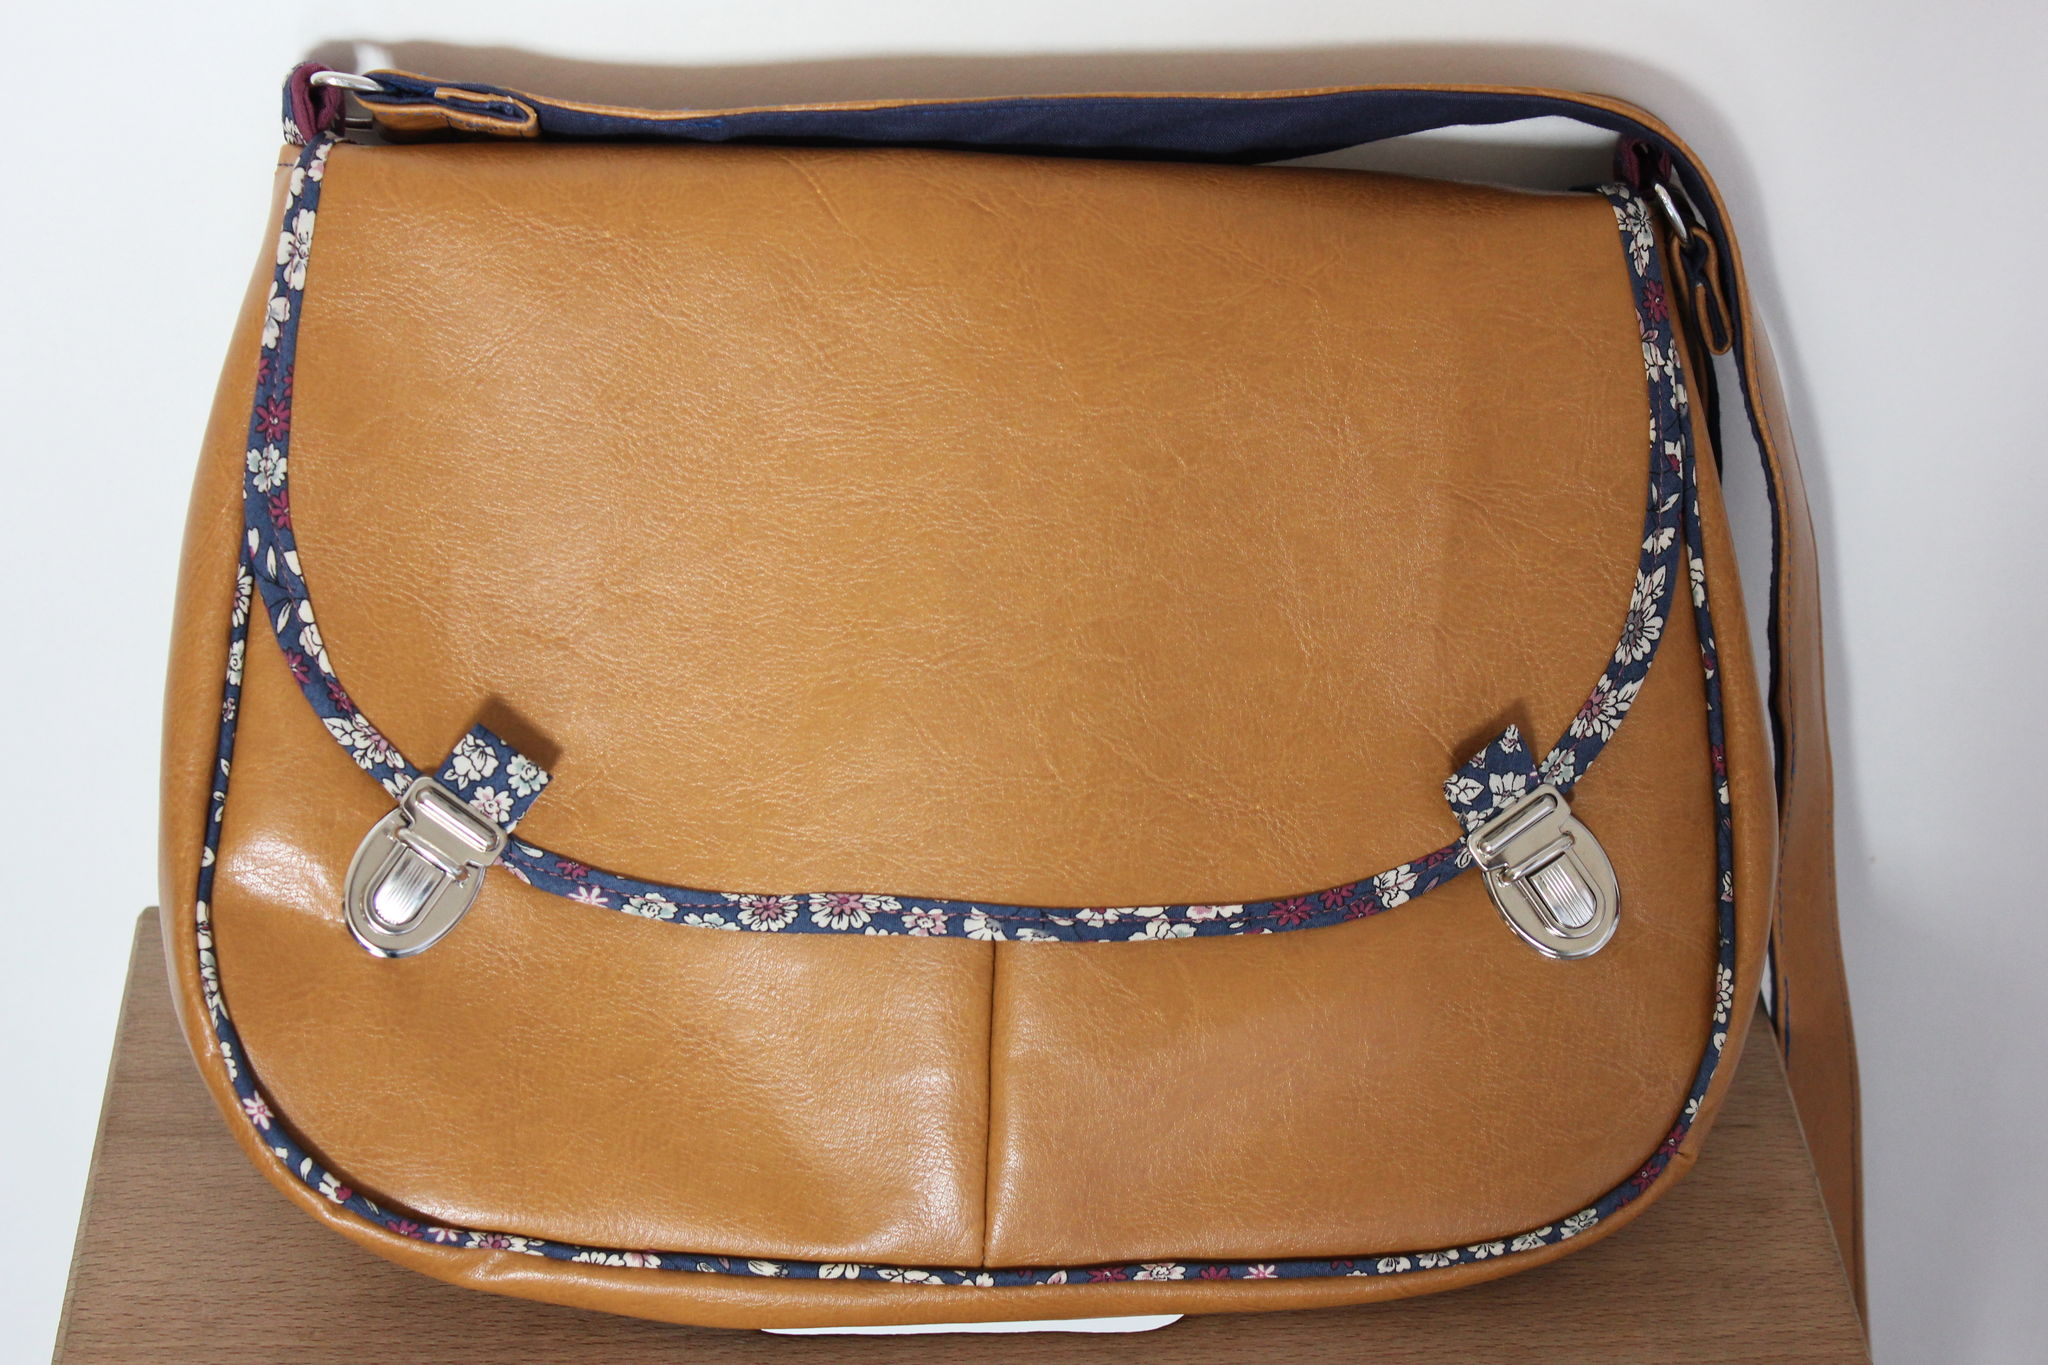 Tutoriel couture sac cuir - Tuto couture sac besace ...